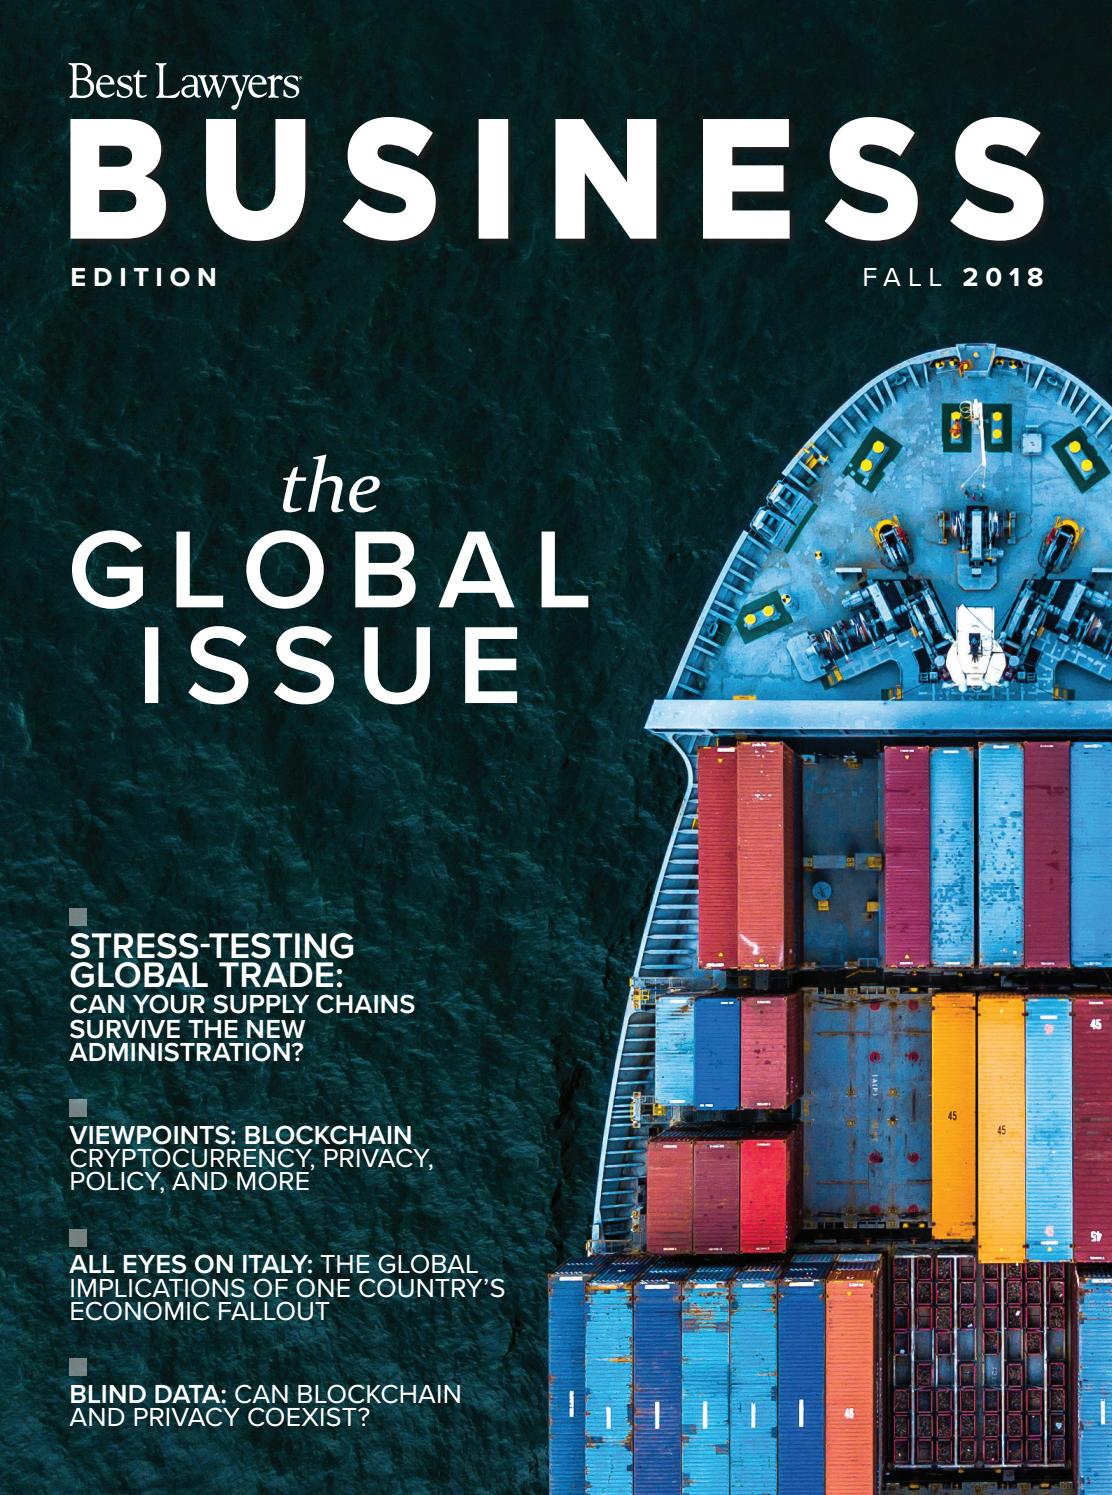 Best Lawyers Fall Business Edition 2018 By Best Lawyers Issuu